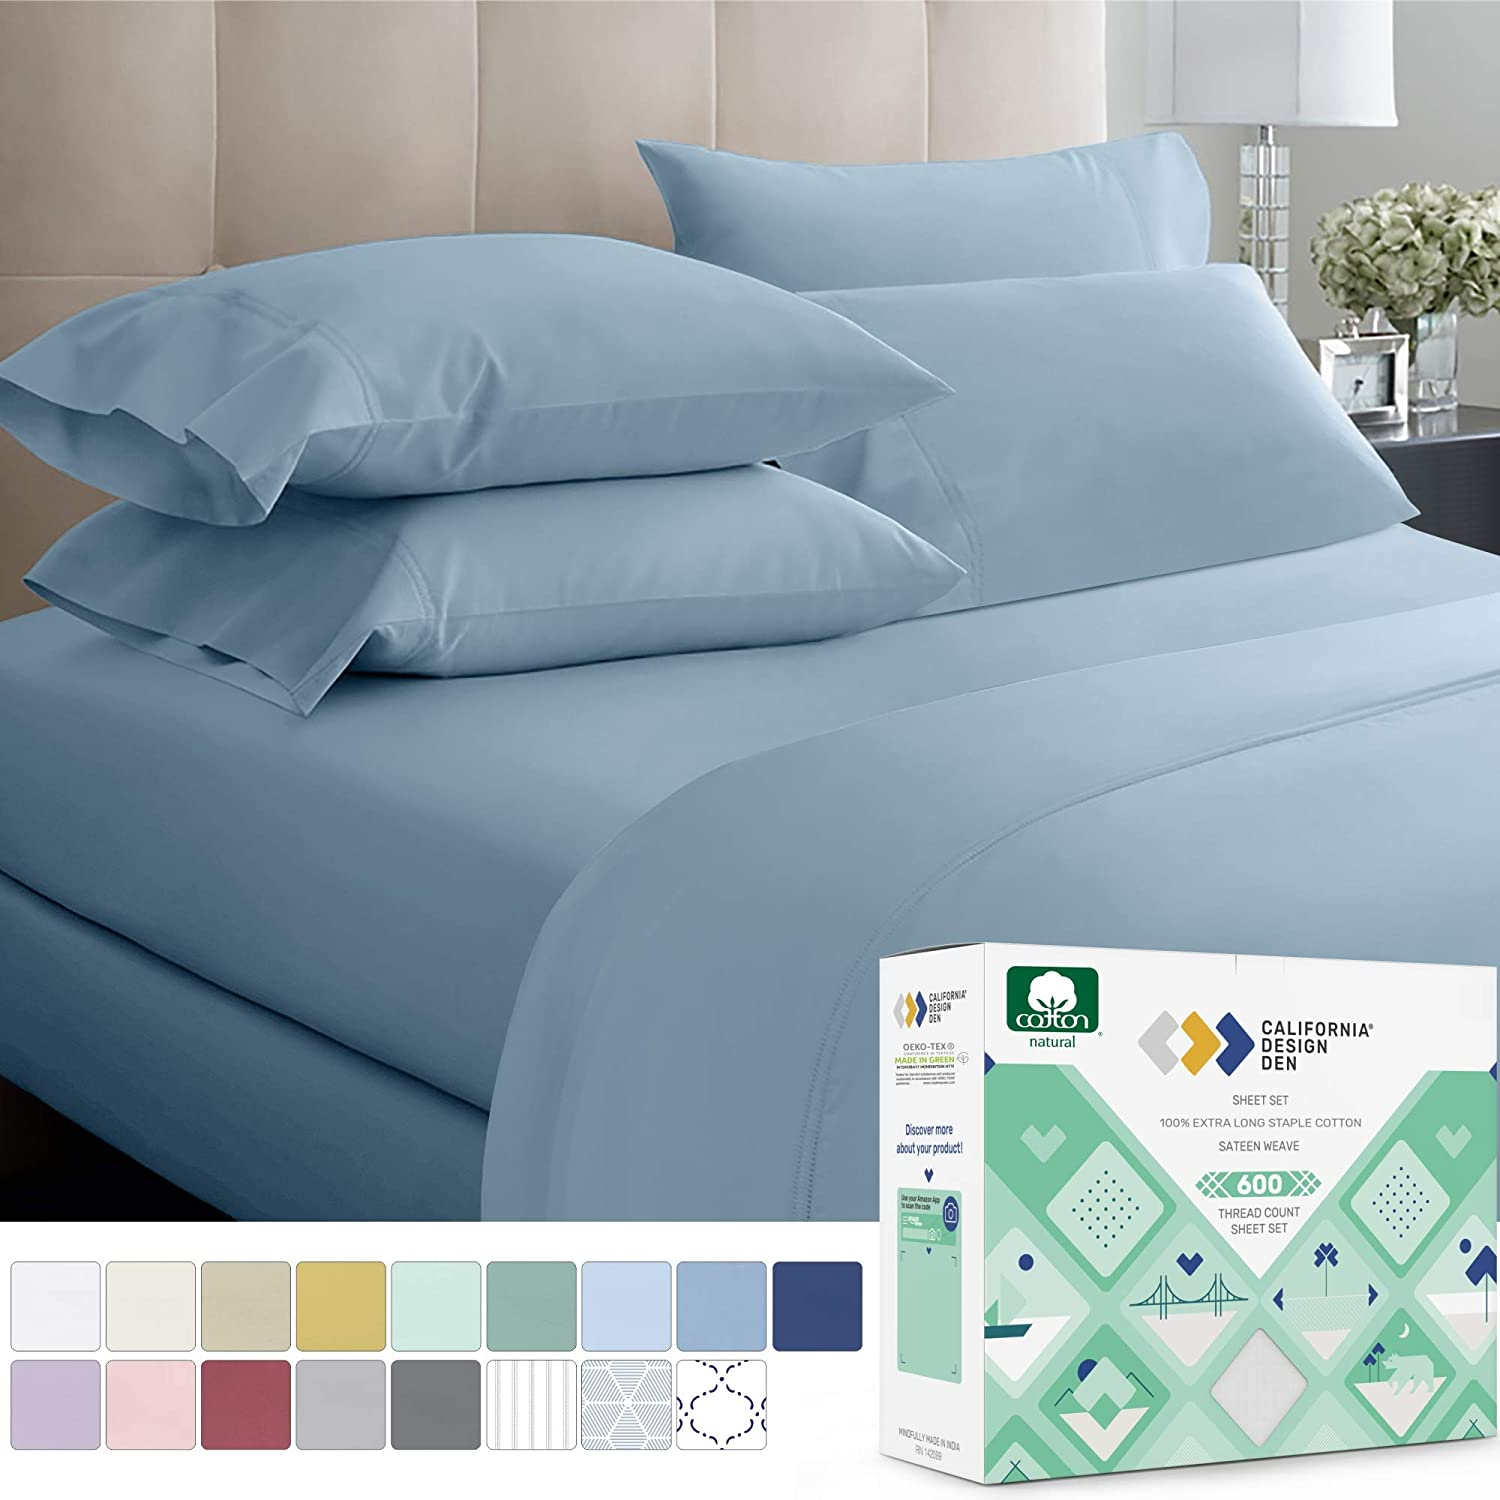 600 Thread Count Best Bed Sheets 100% Cotton Sheets Set Light Grey Extra Long Staple Cotton Queen Sheet For Bed, Fits Mattress 16'' Deep Pocket, Soft & Sateen Weave 4 Piece Sheets and Pillowcases Set: Home & Kitchen